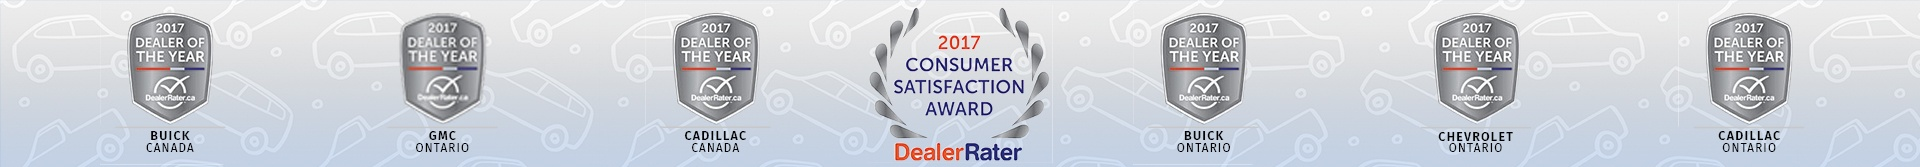 2017 Consumer Satisfaction Award DealerRater